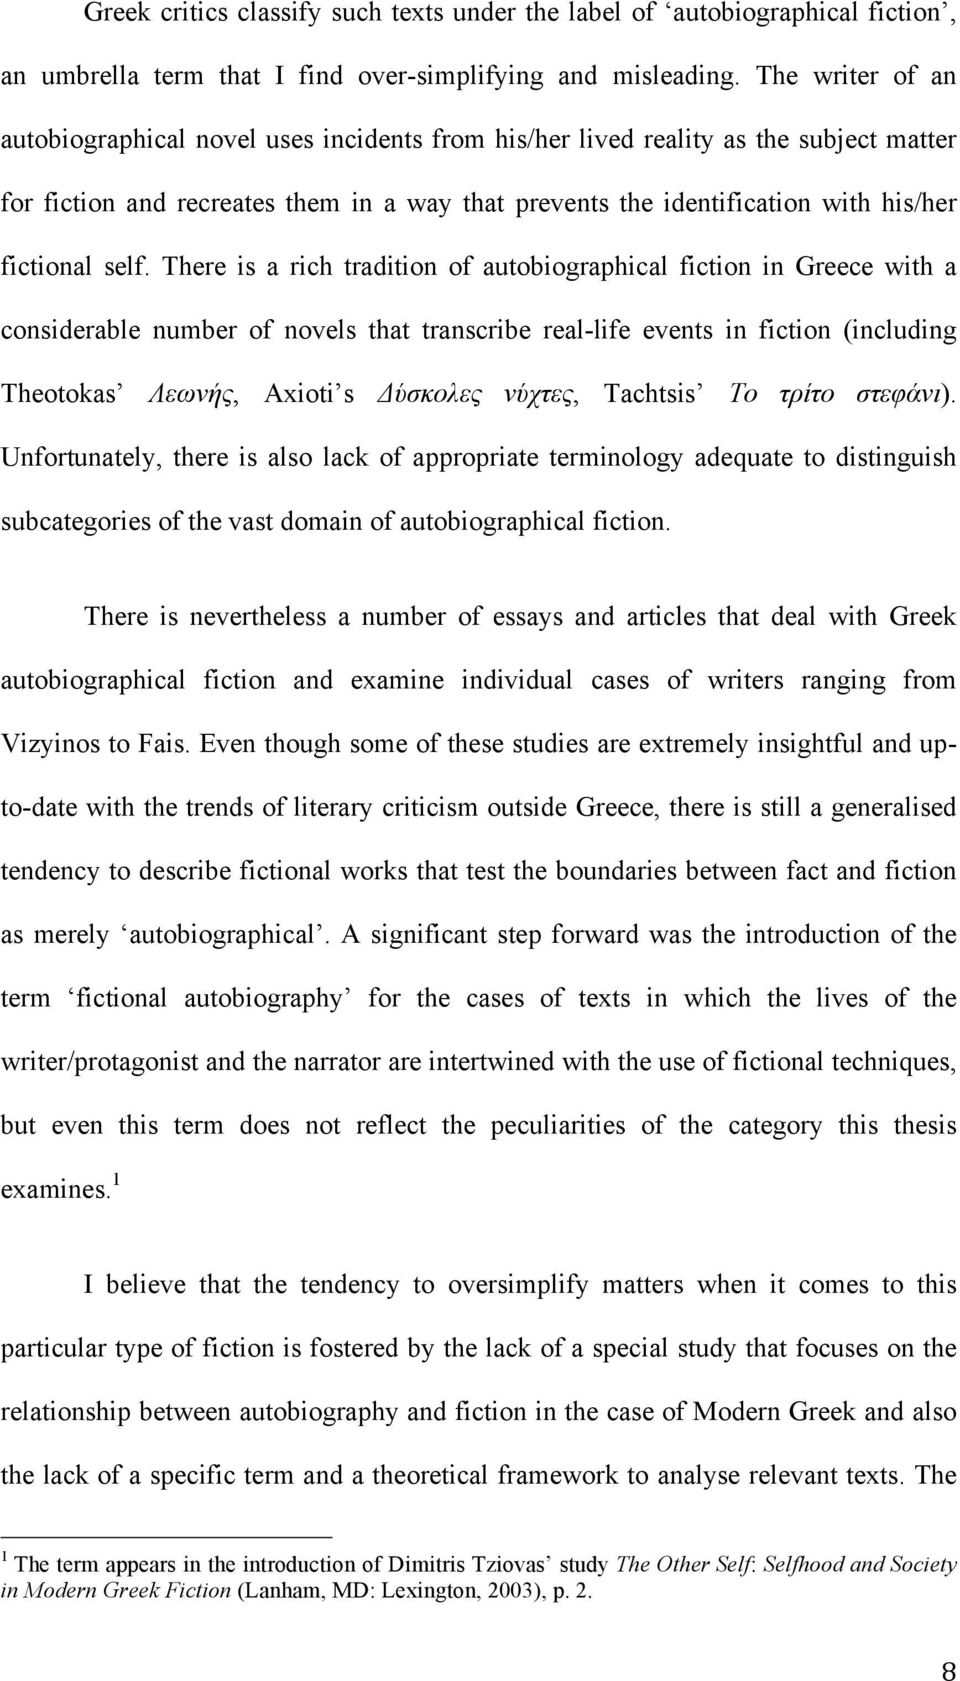 self. There is a rich tradition of autobiographical fiction in Greece with a considerable number of novels that transcribe real-life events in fiction (including Theotokas Λεωνής, Axioti s Δύσκολες